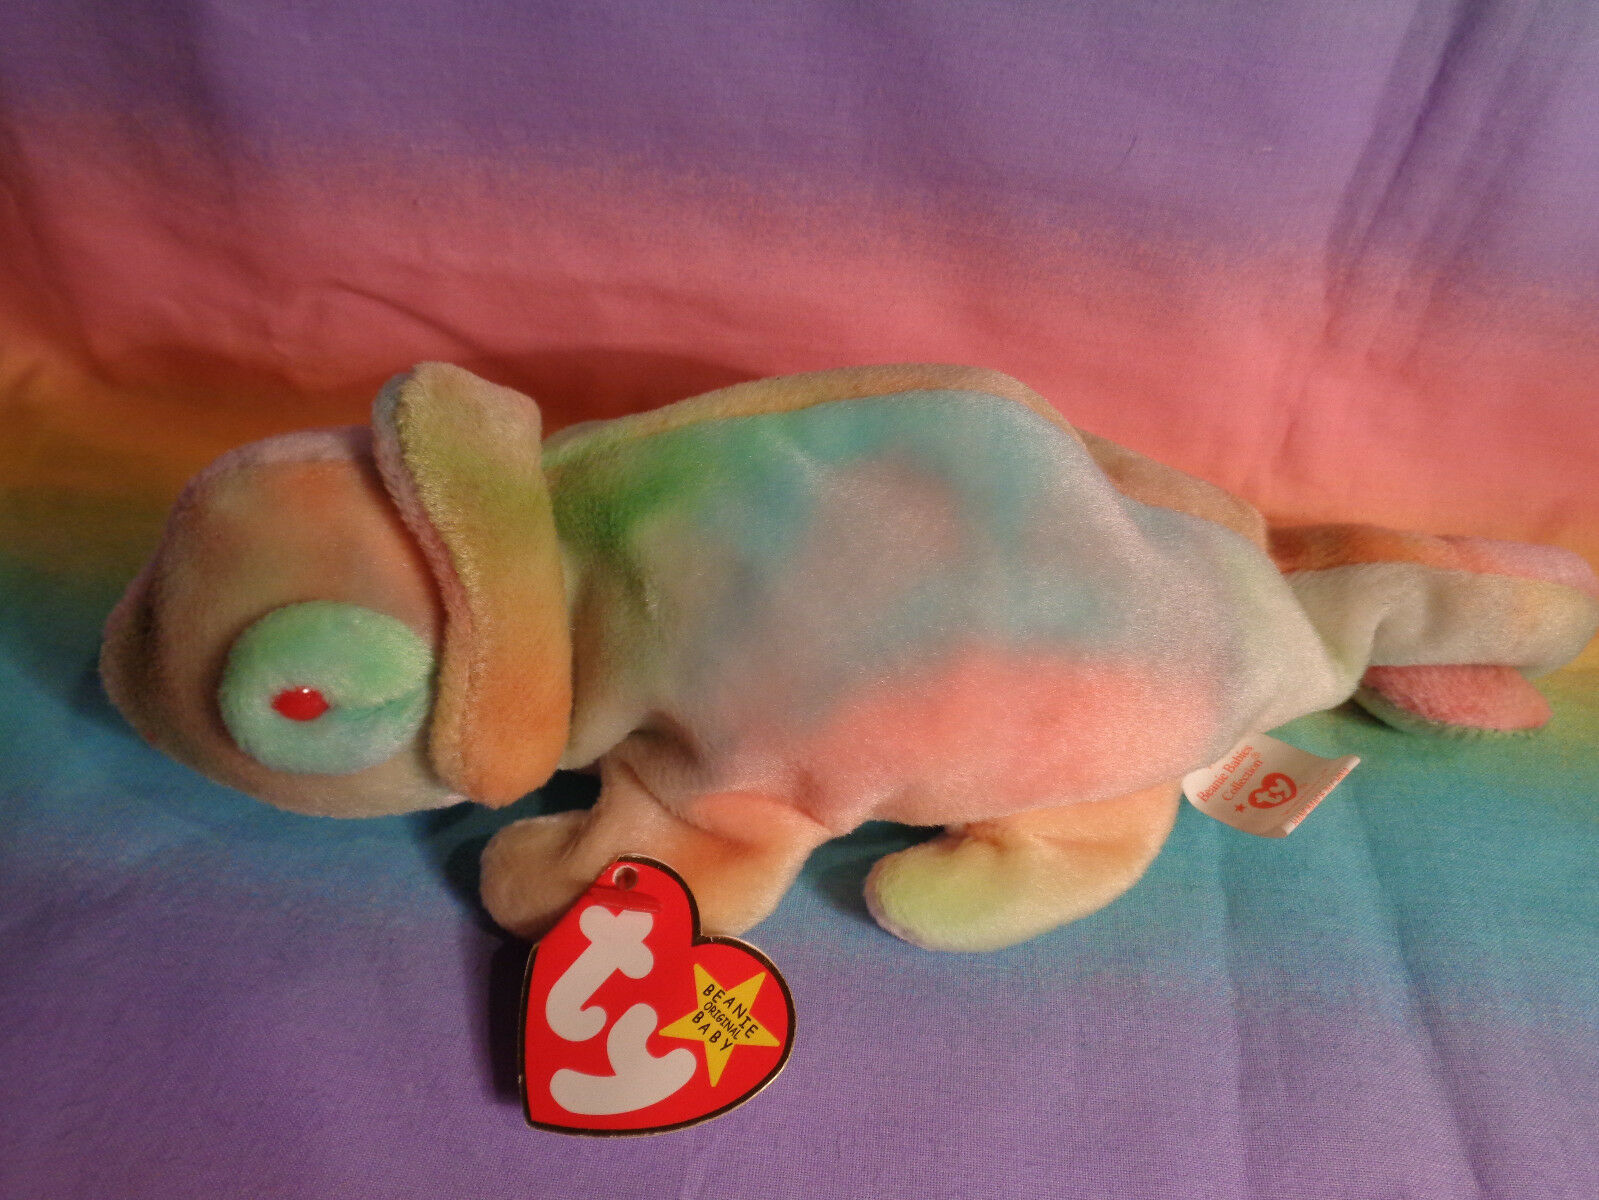 Vintage 1997 Ty Beanie Baby Rainbow Chameleon Bean Bag Plush w/ Tags - as is image 4